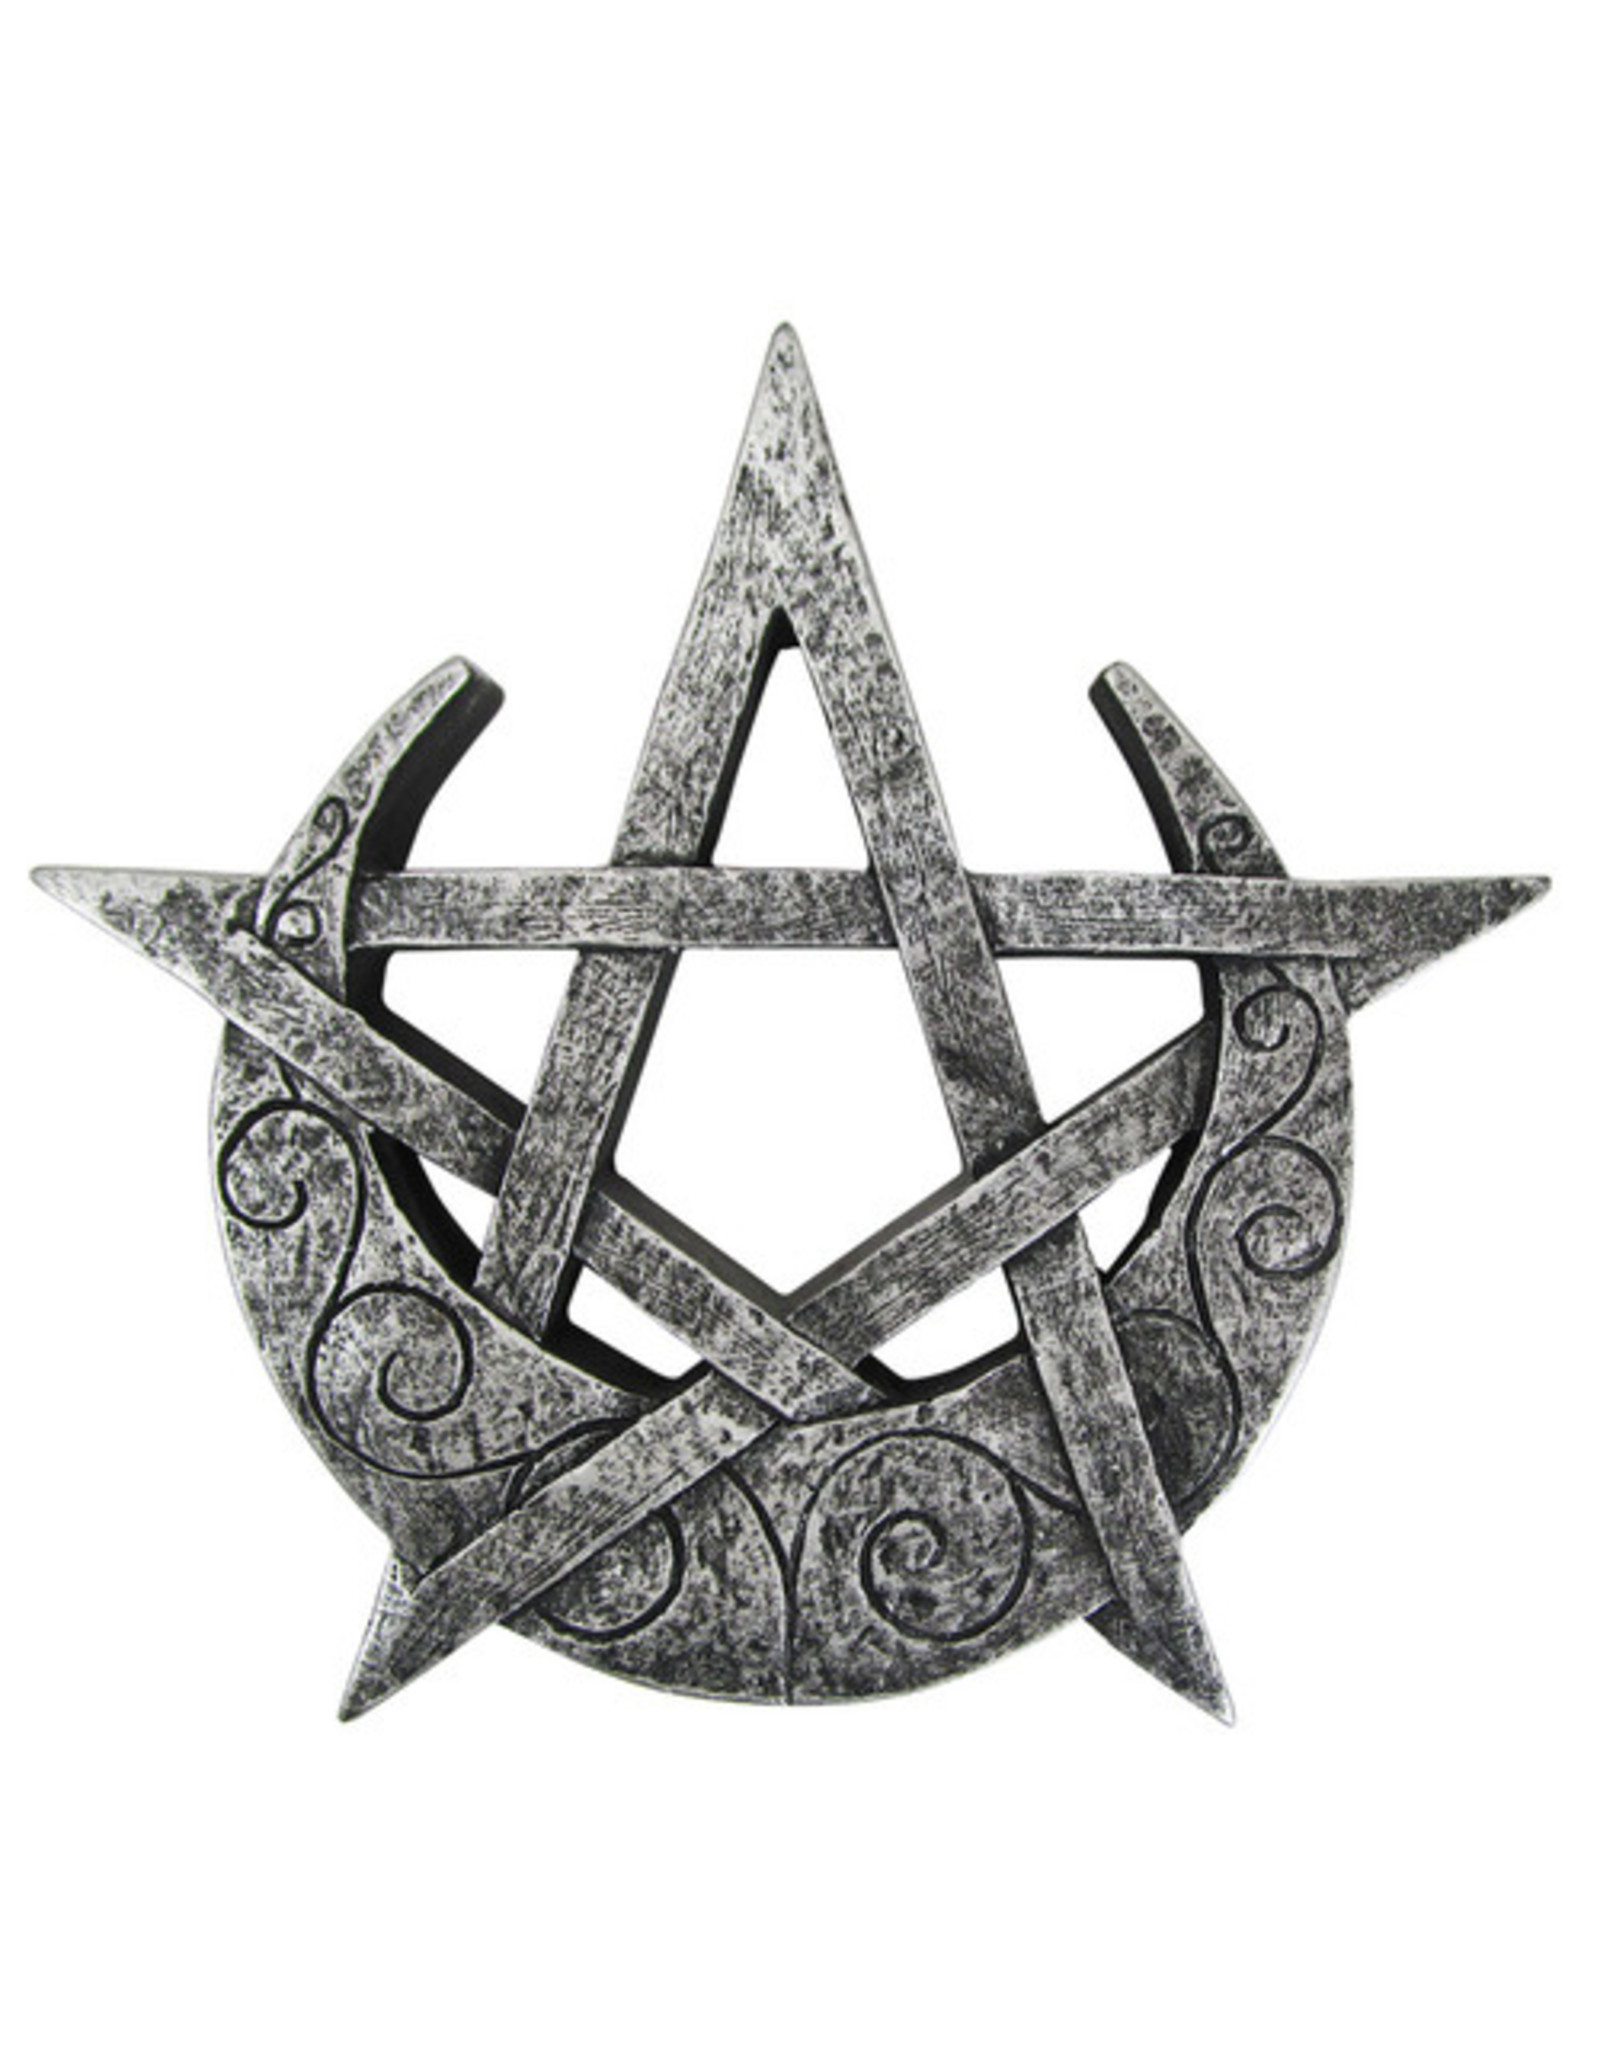 Crescent Moon Pentacle Plaque in Silver Finish